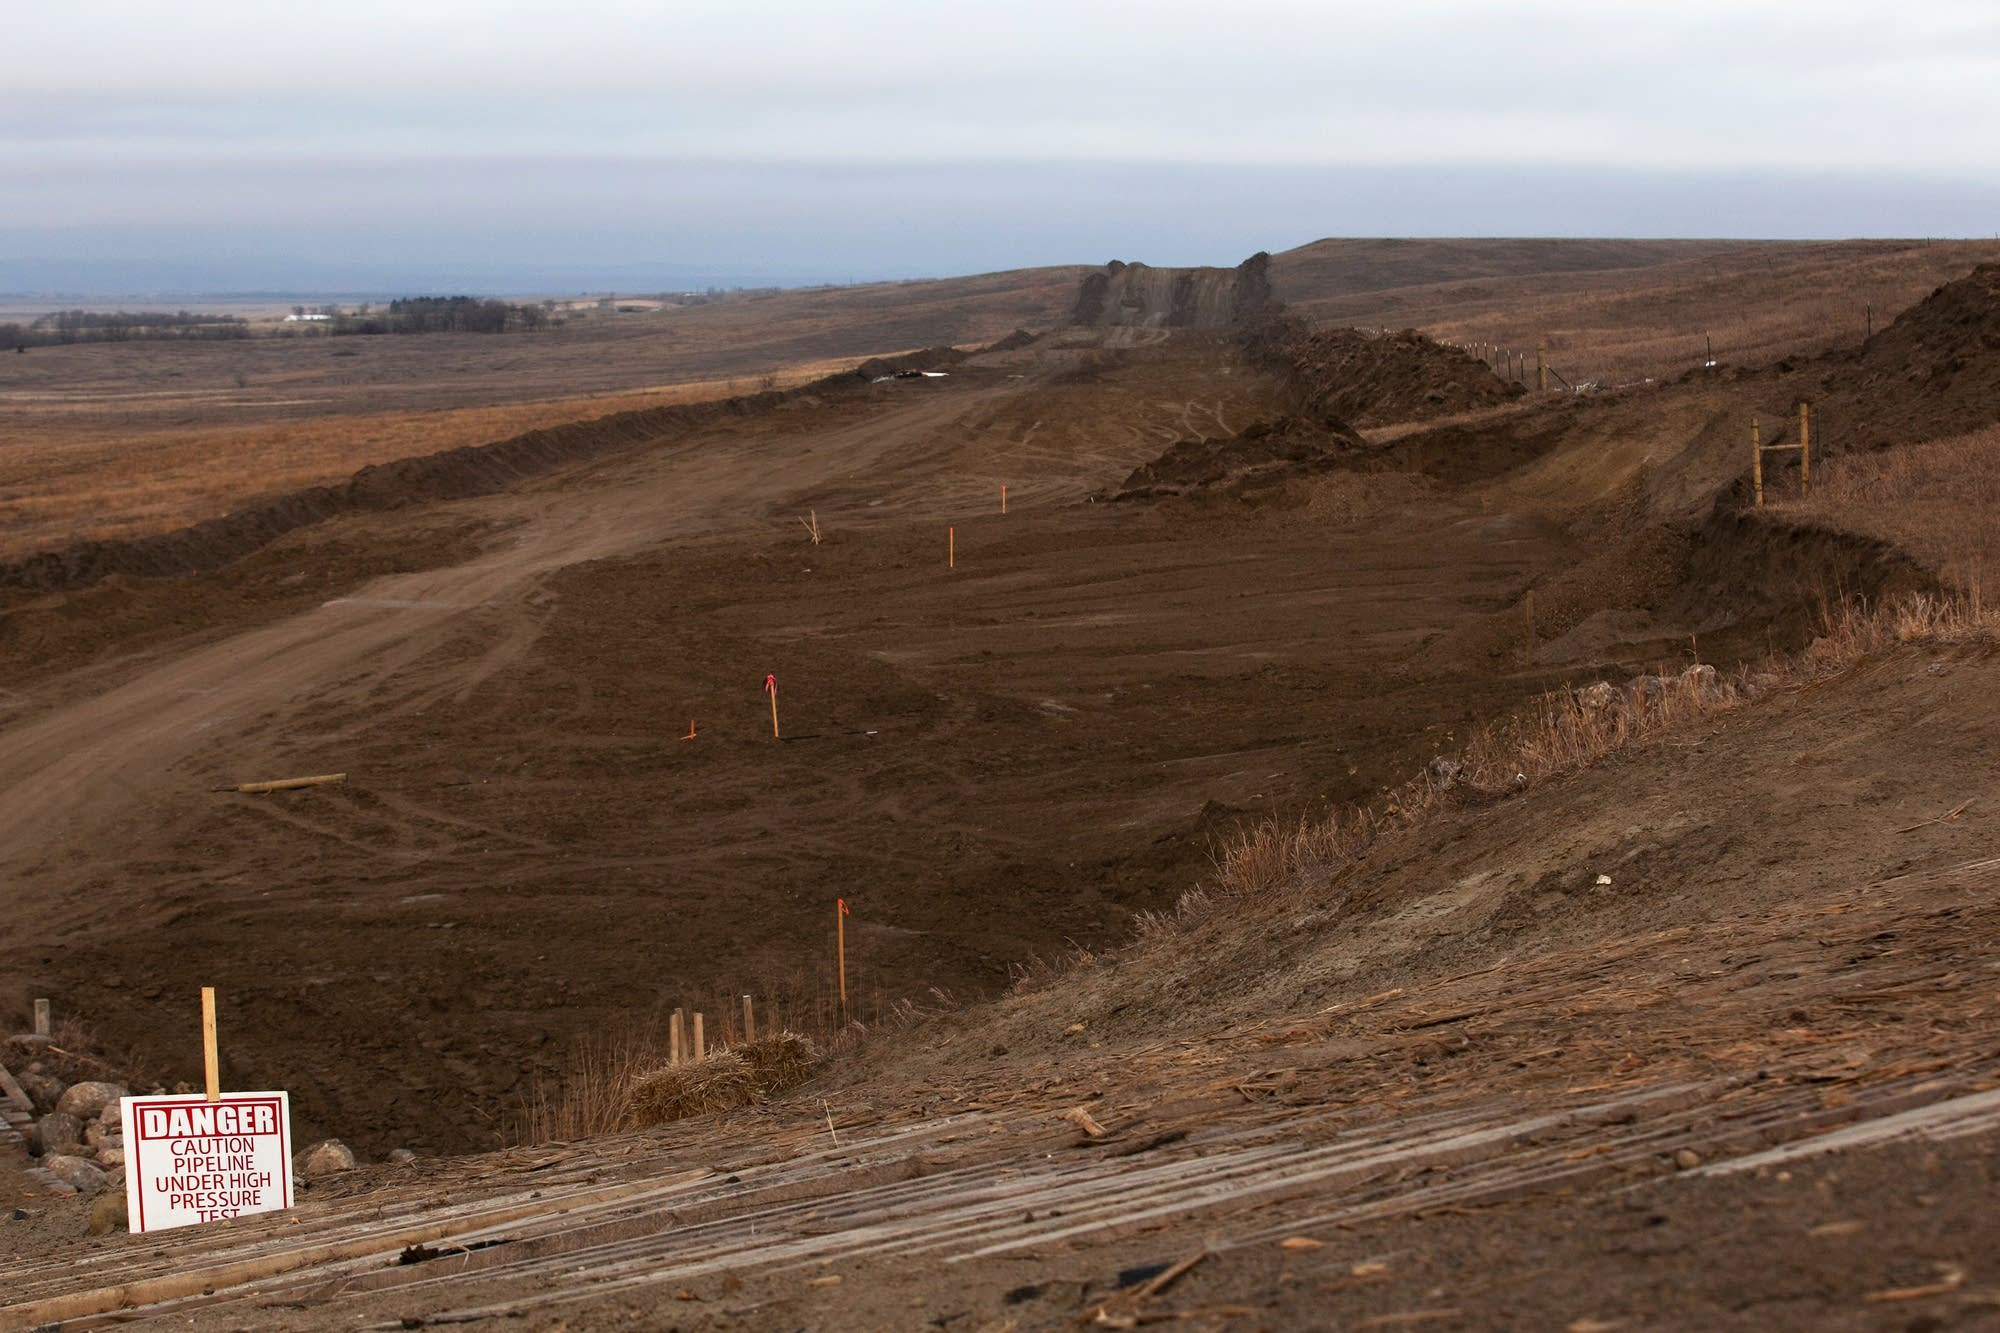 Evidence of Dakota Access oil pipeline construction